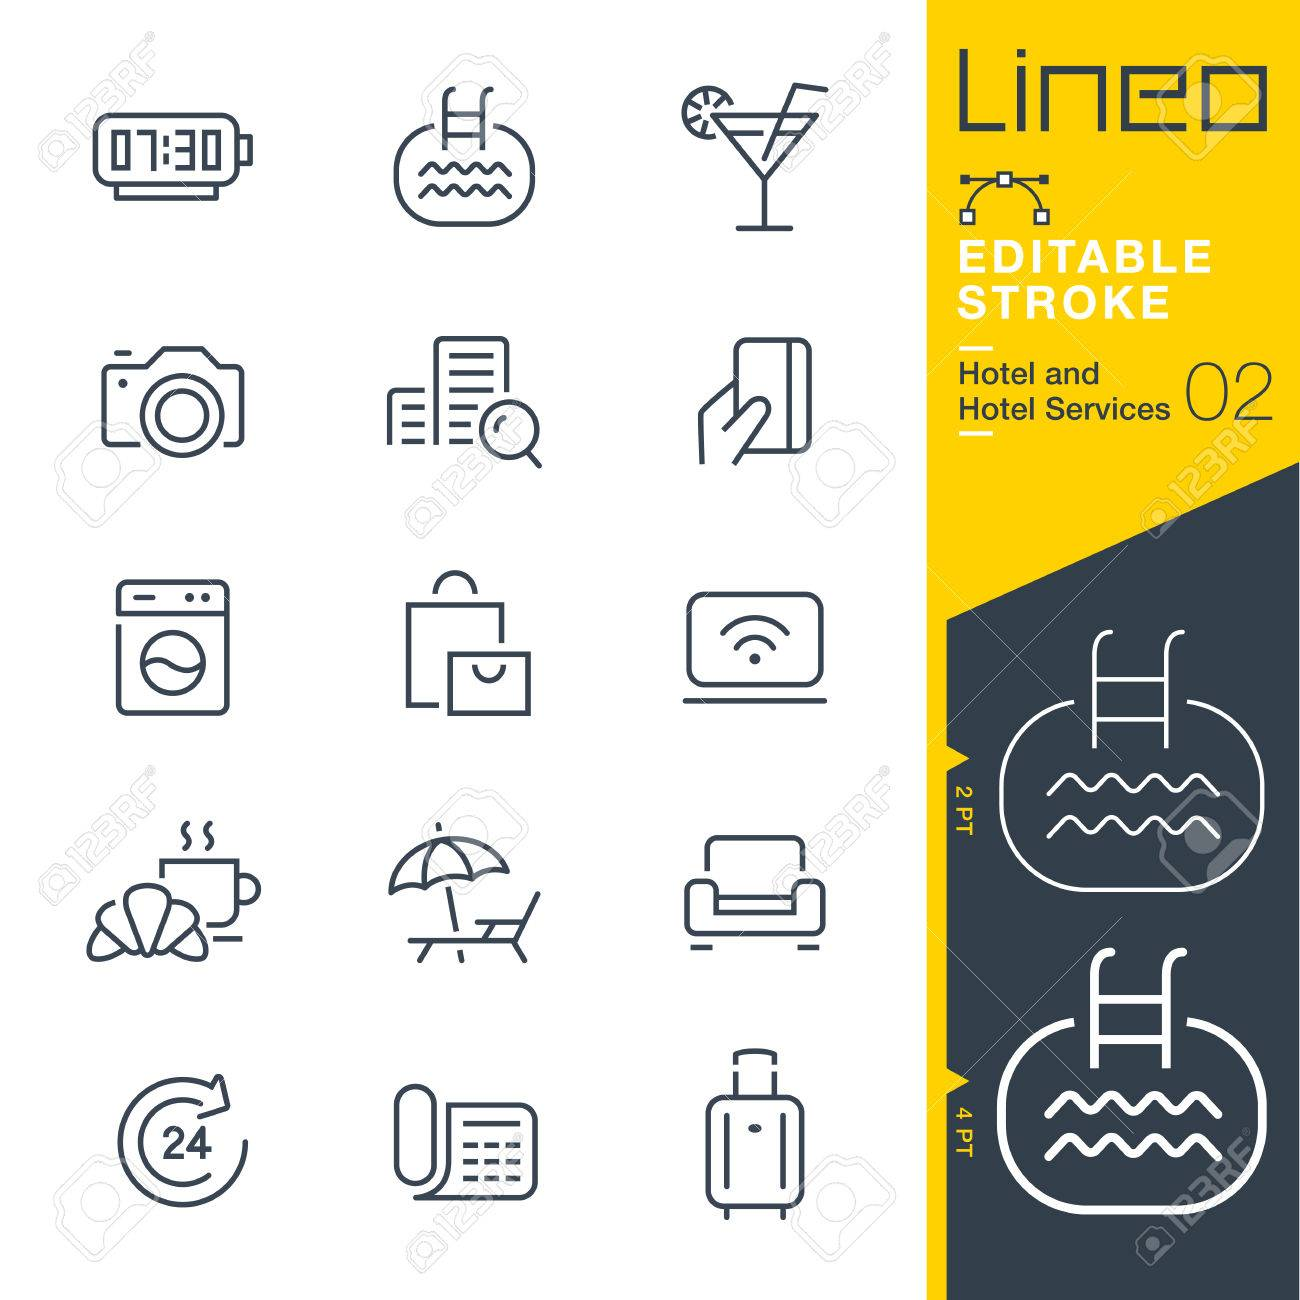 Lineo Editable Stroke - Hotel line icon Vector Icons - Adjust stroke weight - Change to any color - 80270255